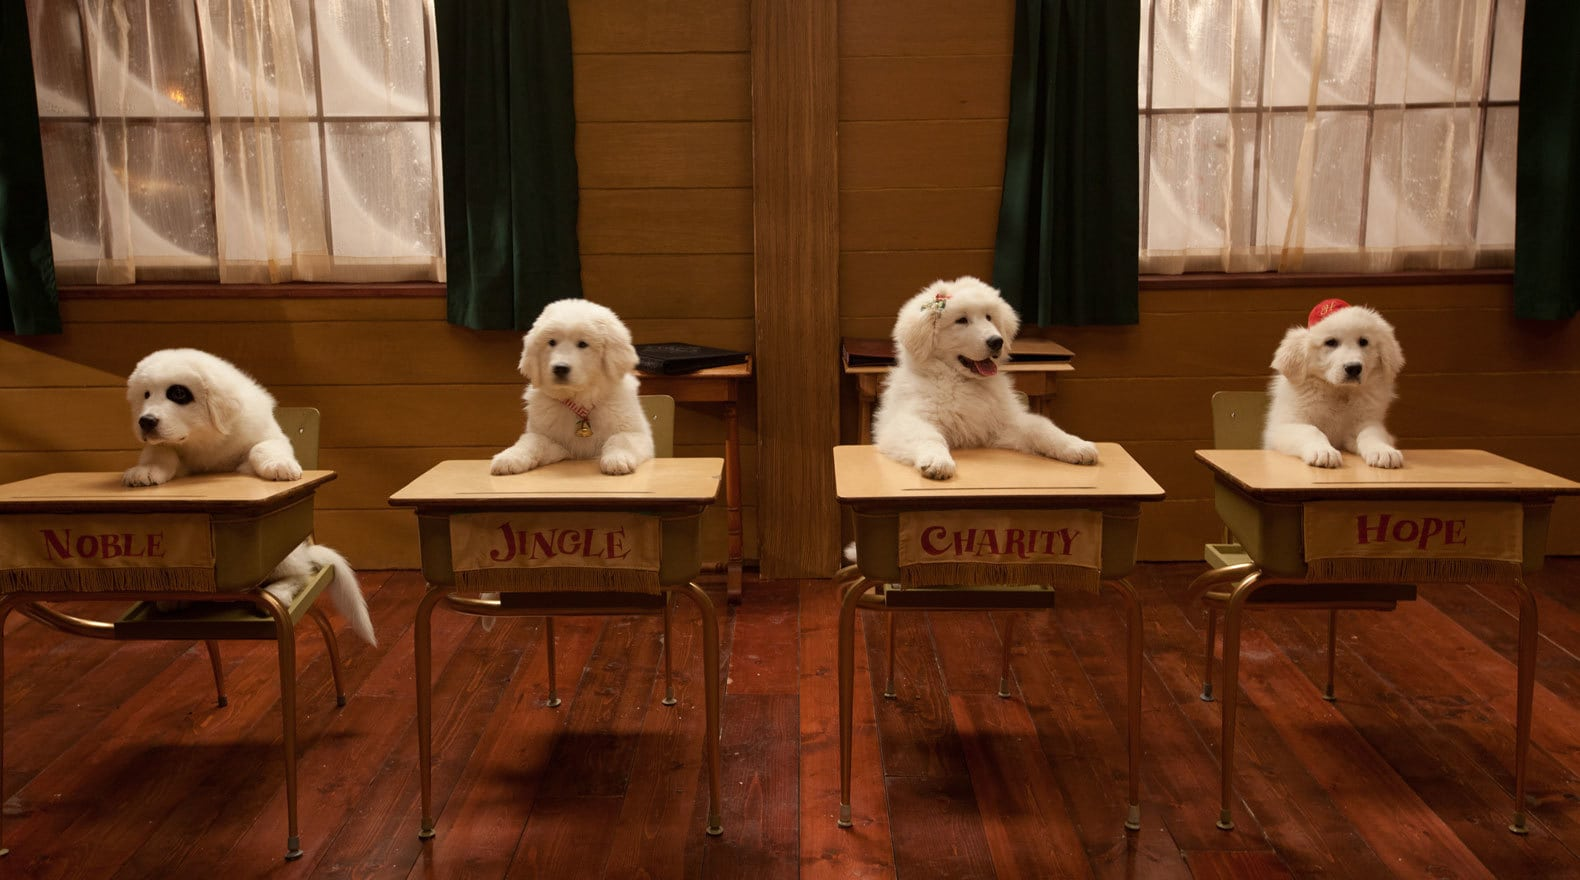 two puppies sitting at a school desk